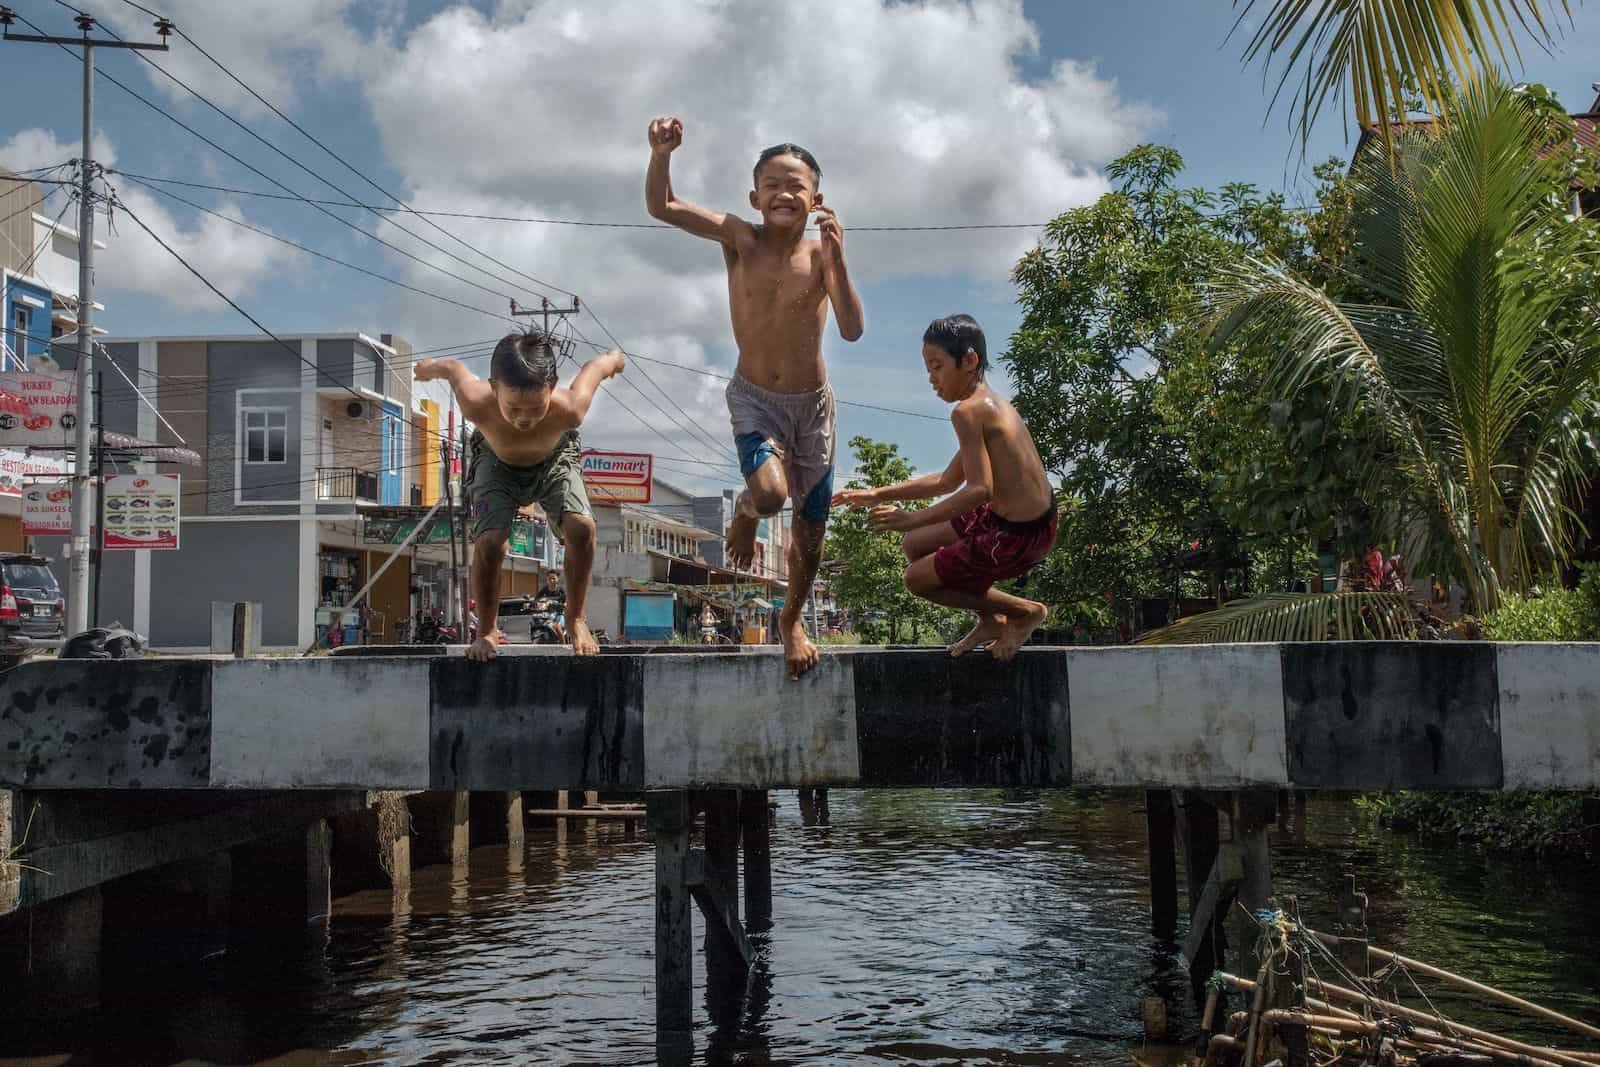 Kids Around the World: Three boys jump into a ditch next to a city block.